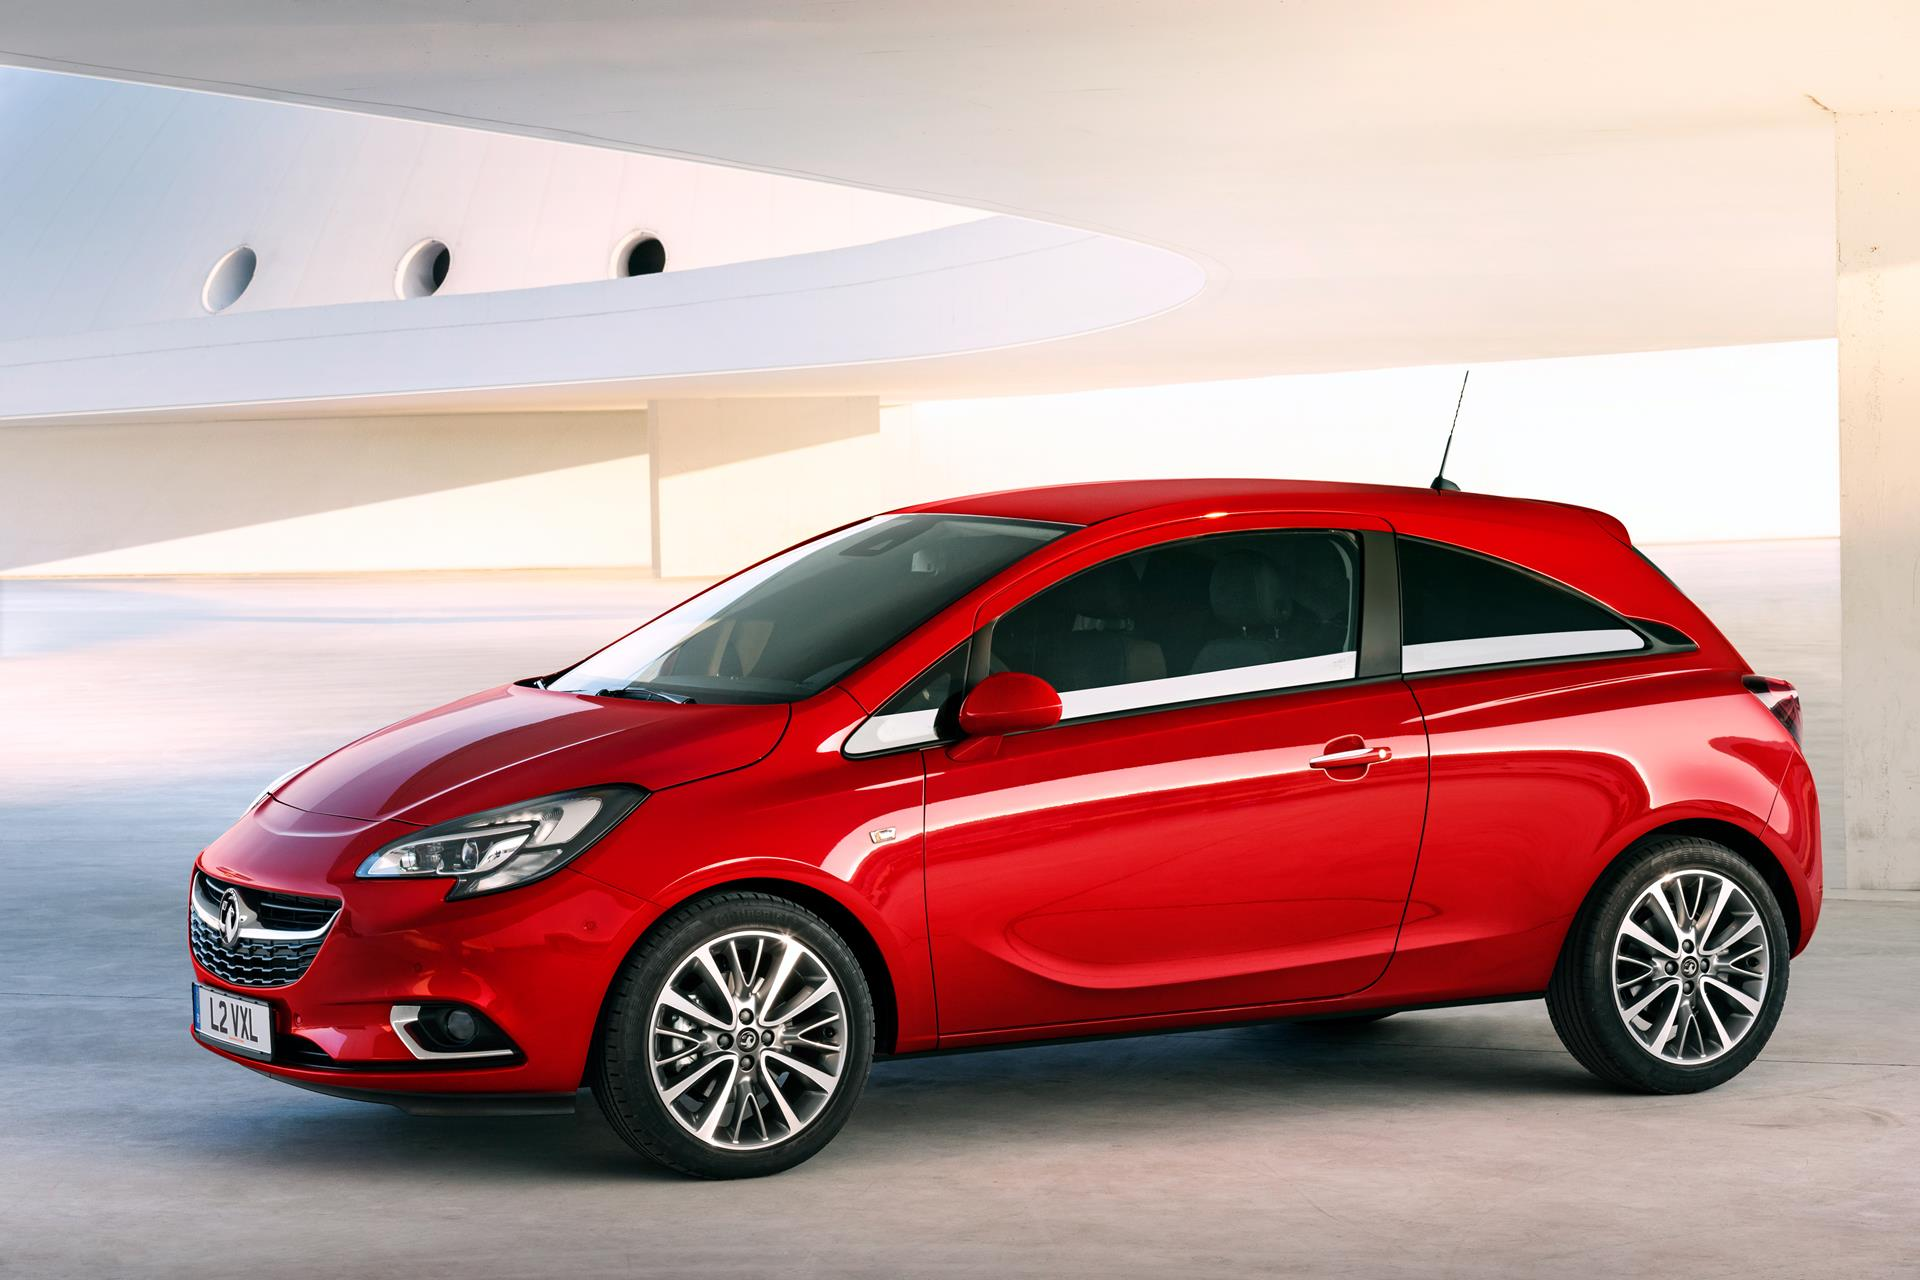 2015 vauxhall corsa news and information. Black Bedroom Furniture Sets. Home Design Ideas